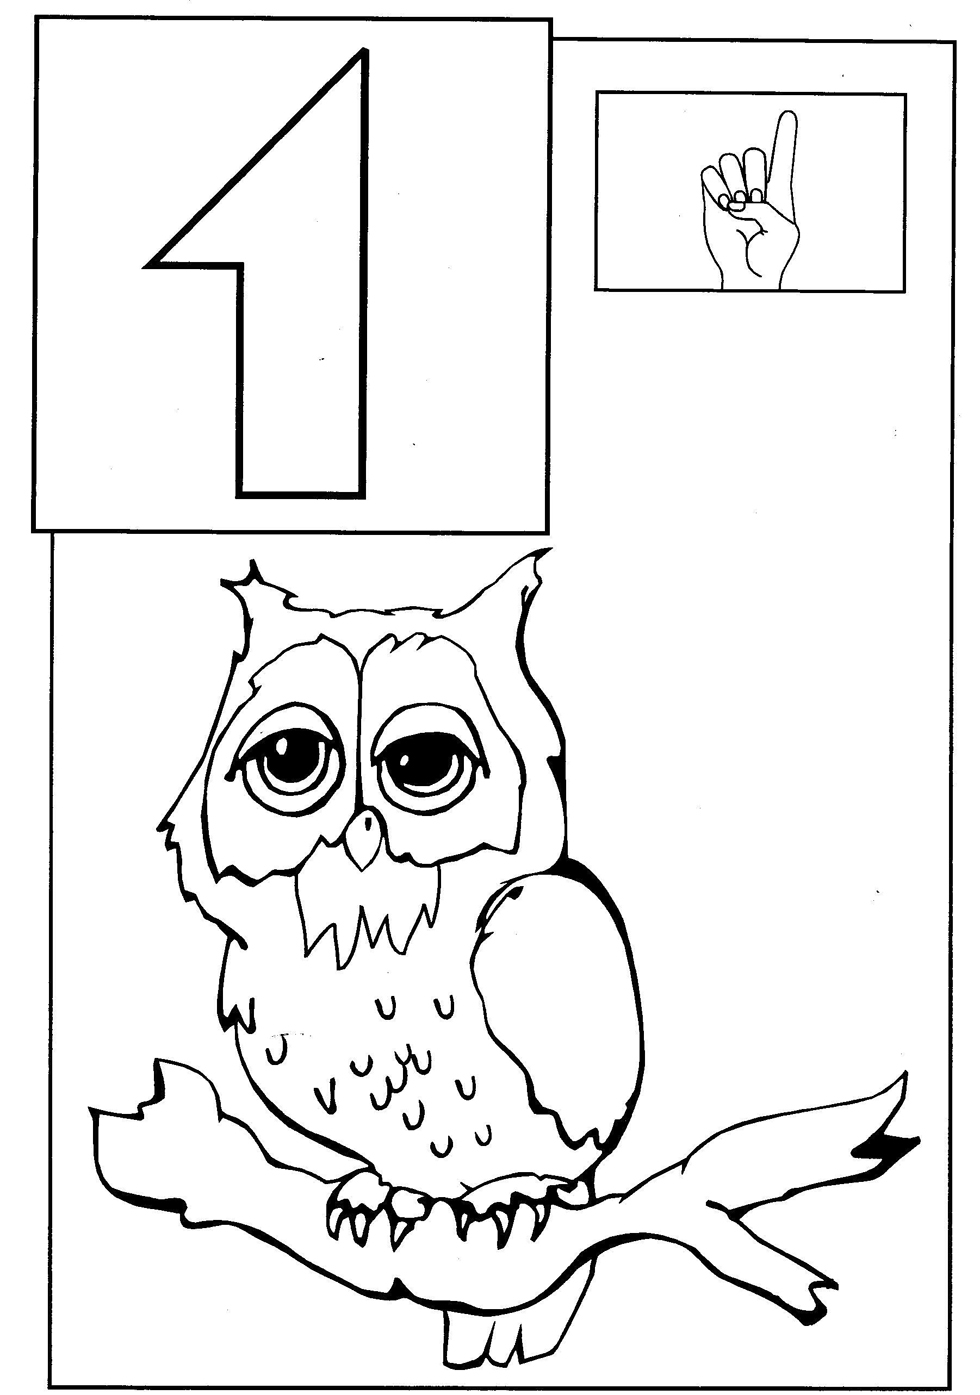 Toddler Coloring Pages   colouring sheets for toddlers